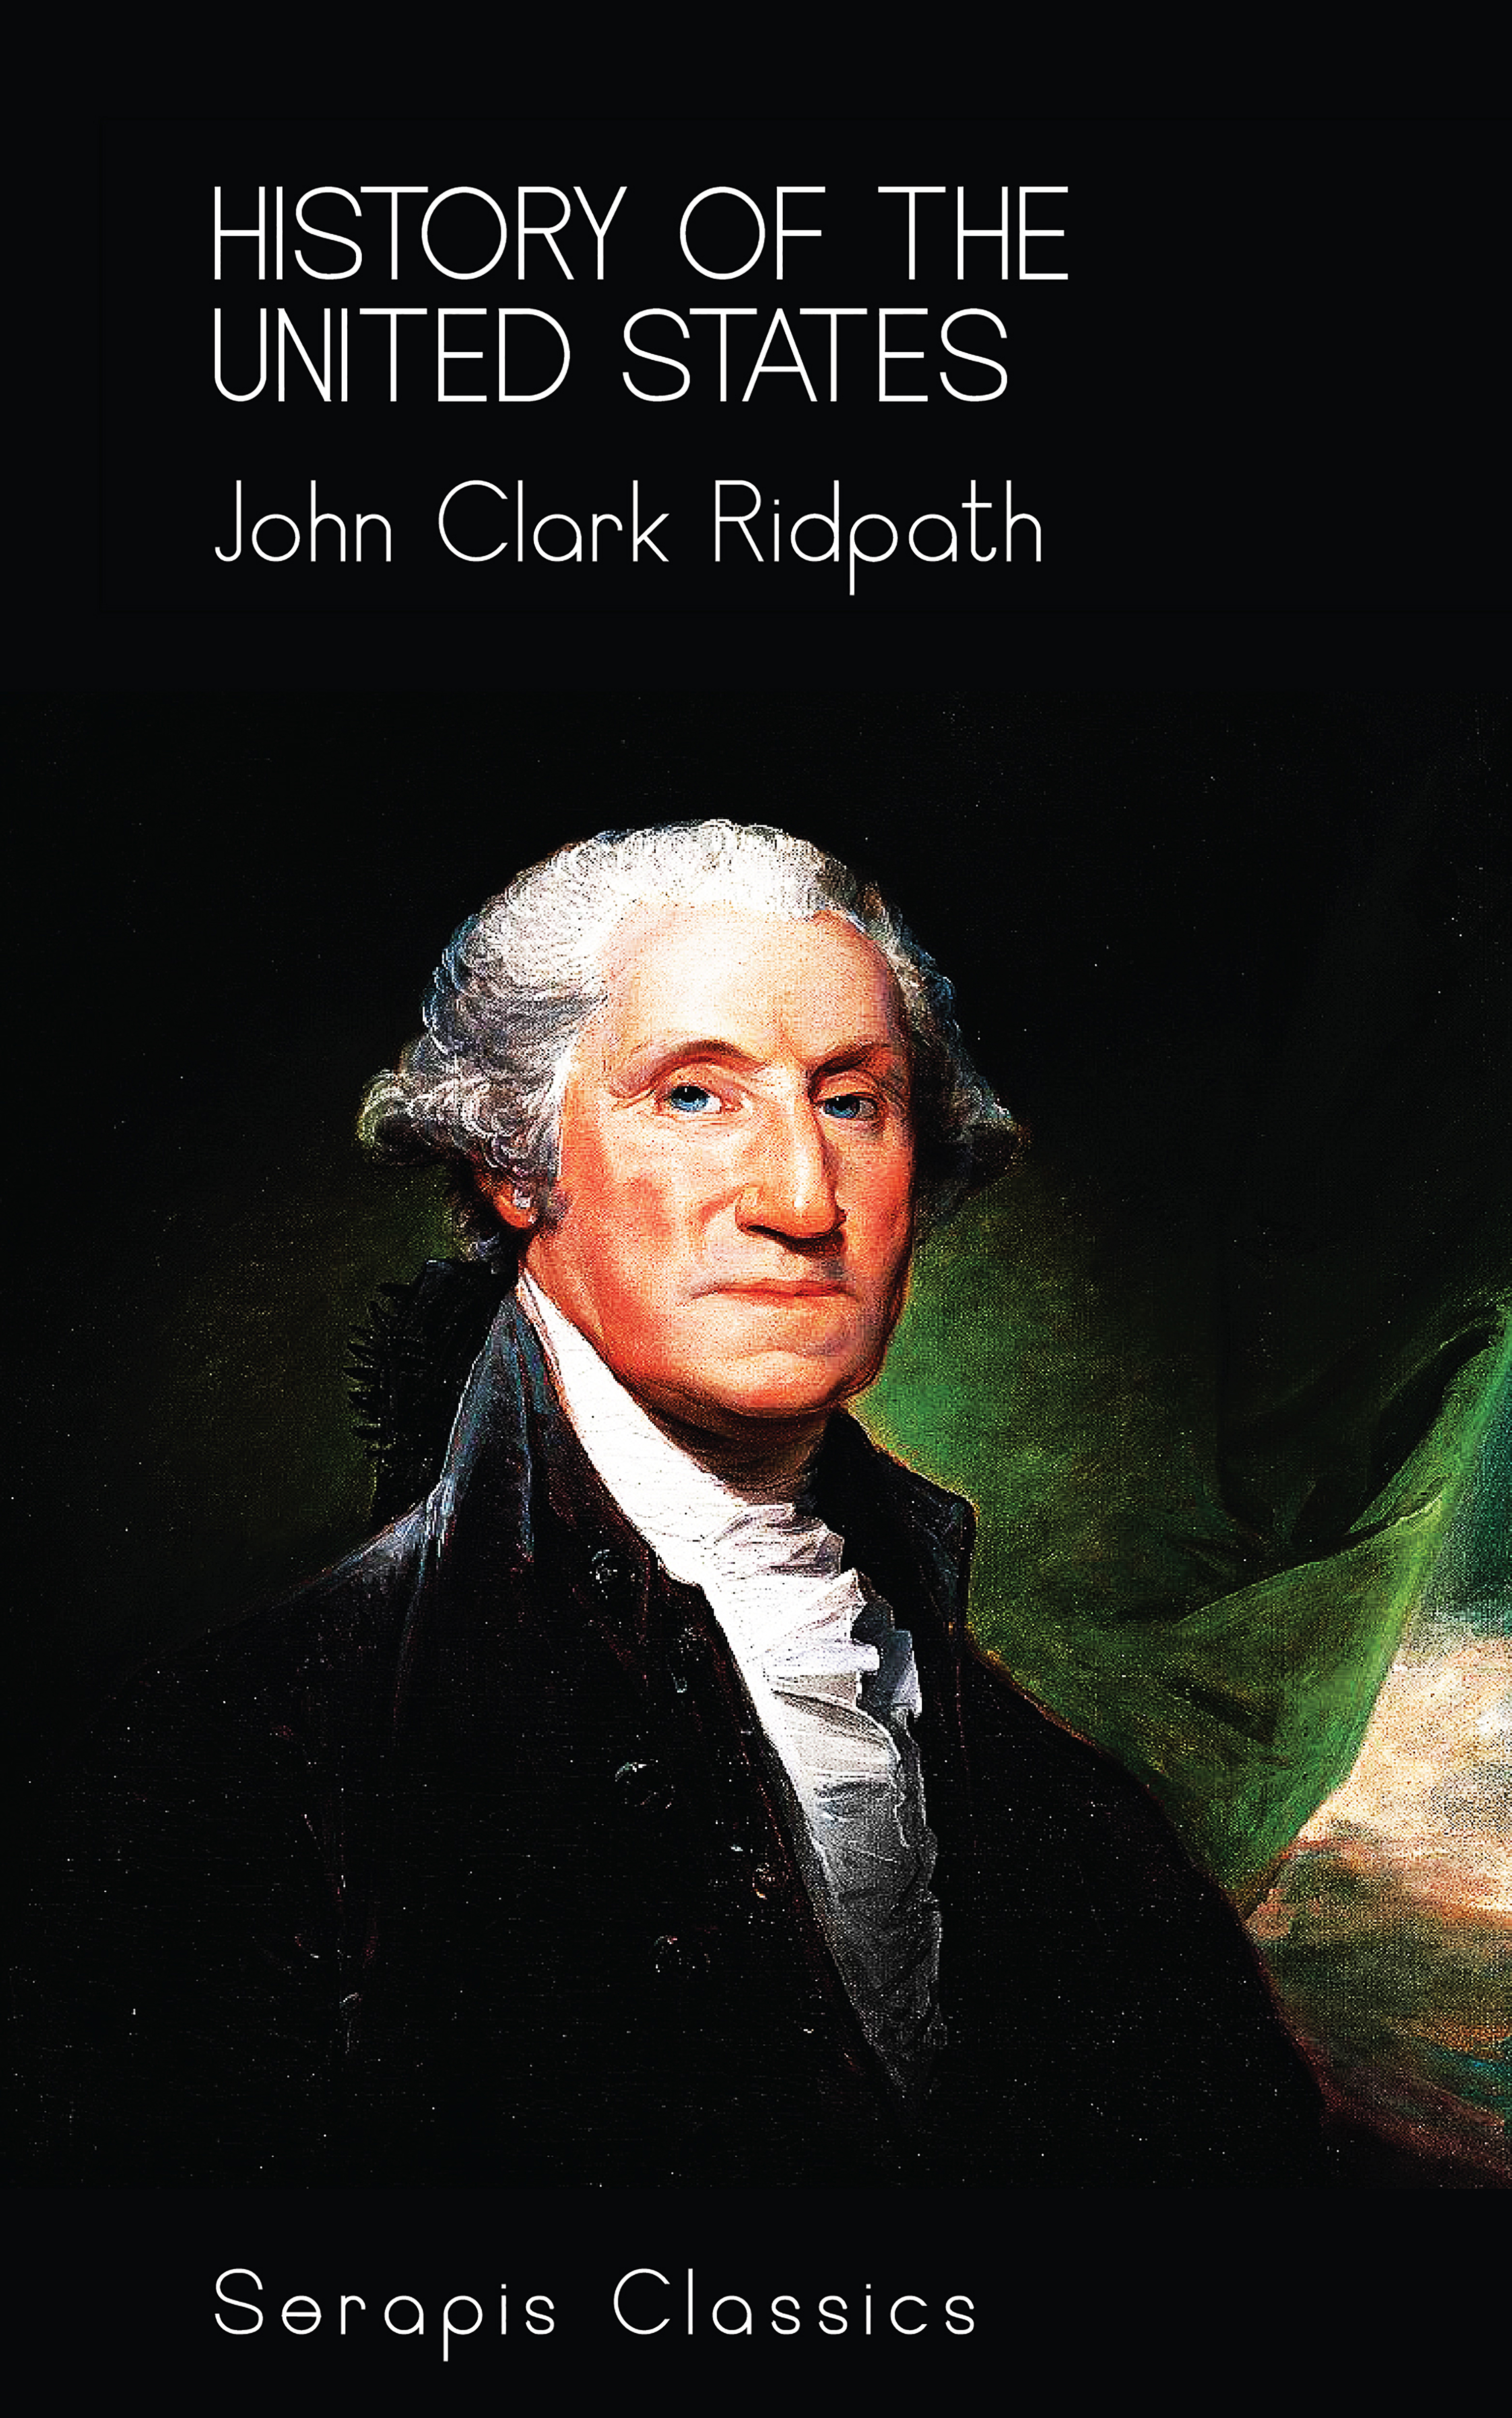 John Clark Ridpath History of the United States (Serapis Classics) knox john jay a history of banking in the united states